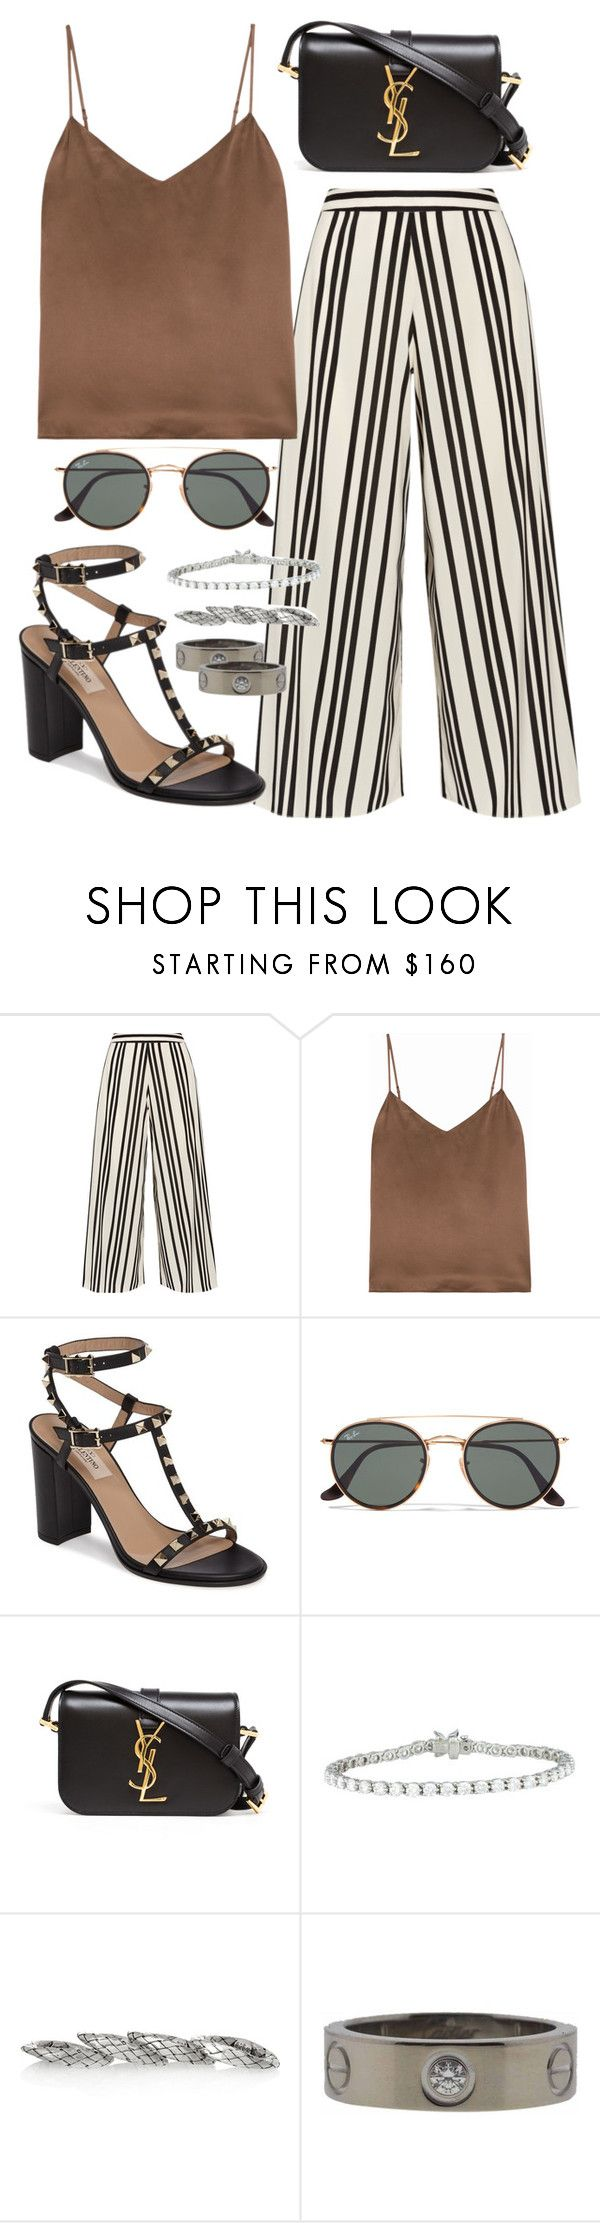 """Untitled #1362"" by carolineeeeeeee ❤ liked on Polyvore featuring Alice + Olivia, L'Agence, Valentino, Ray-Ban, Yves Saint Laurent, Tiffany & Co., Bottega Veneta and Cartier"